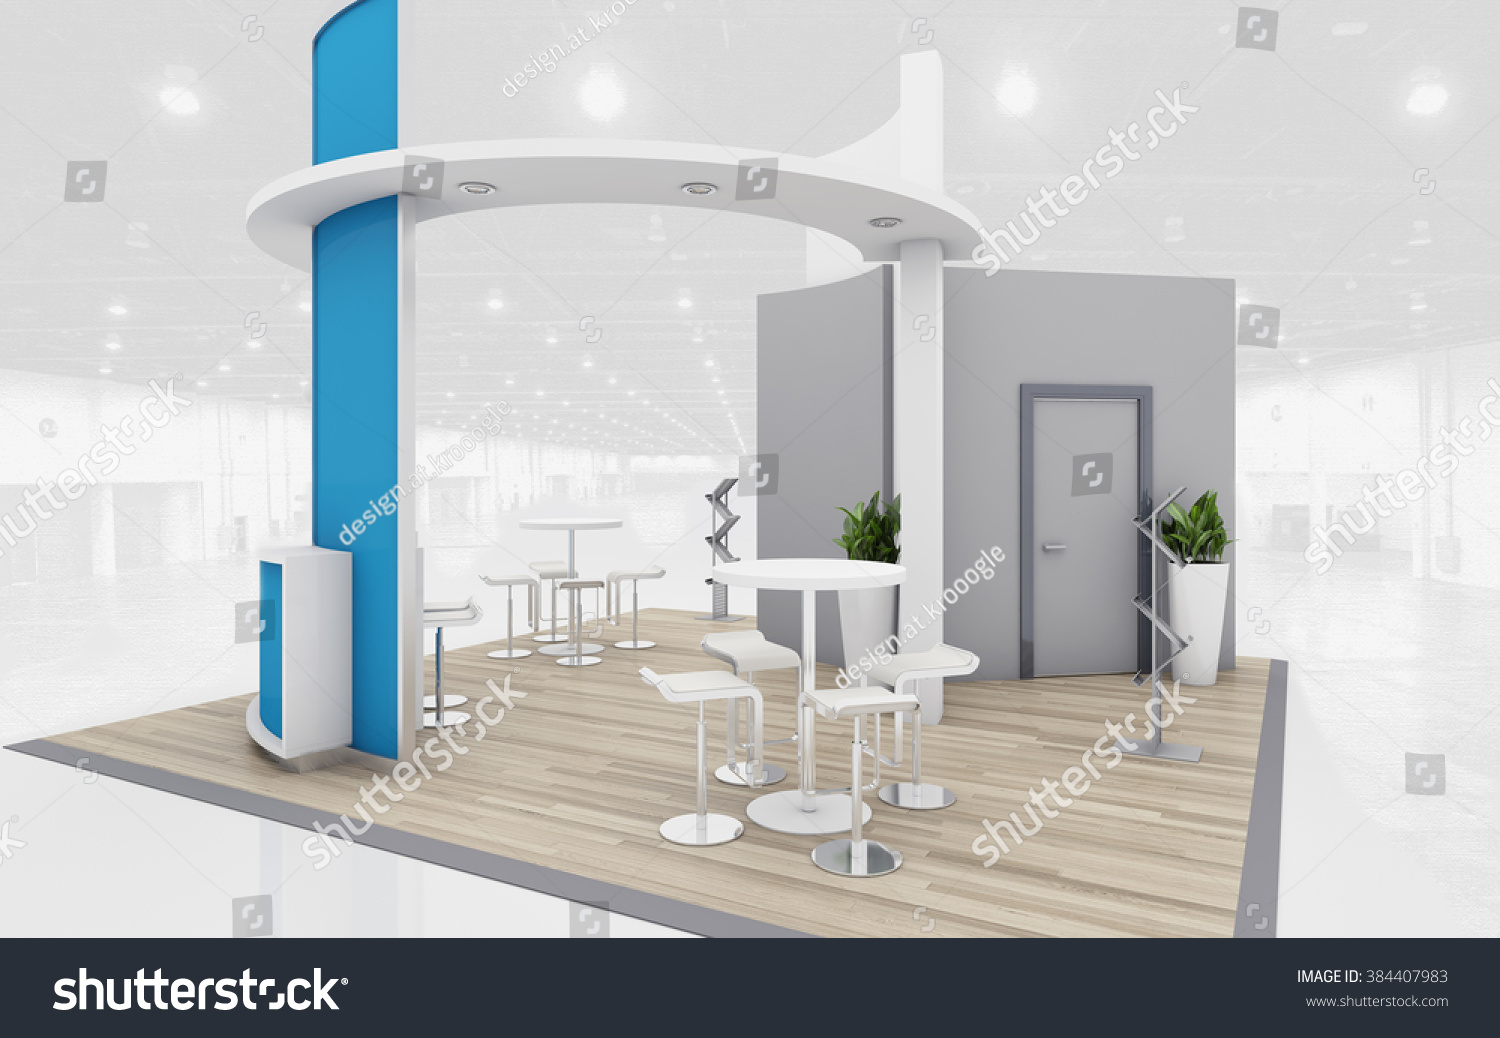 D Rendering Exhibition : Blue grey exhibition stand d rendering stock illustration